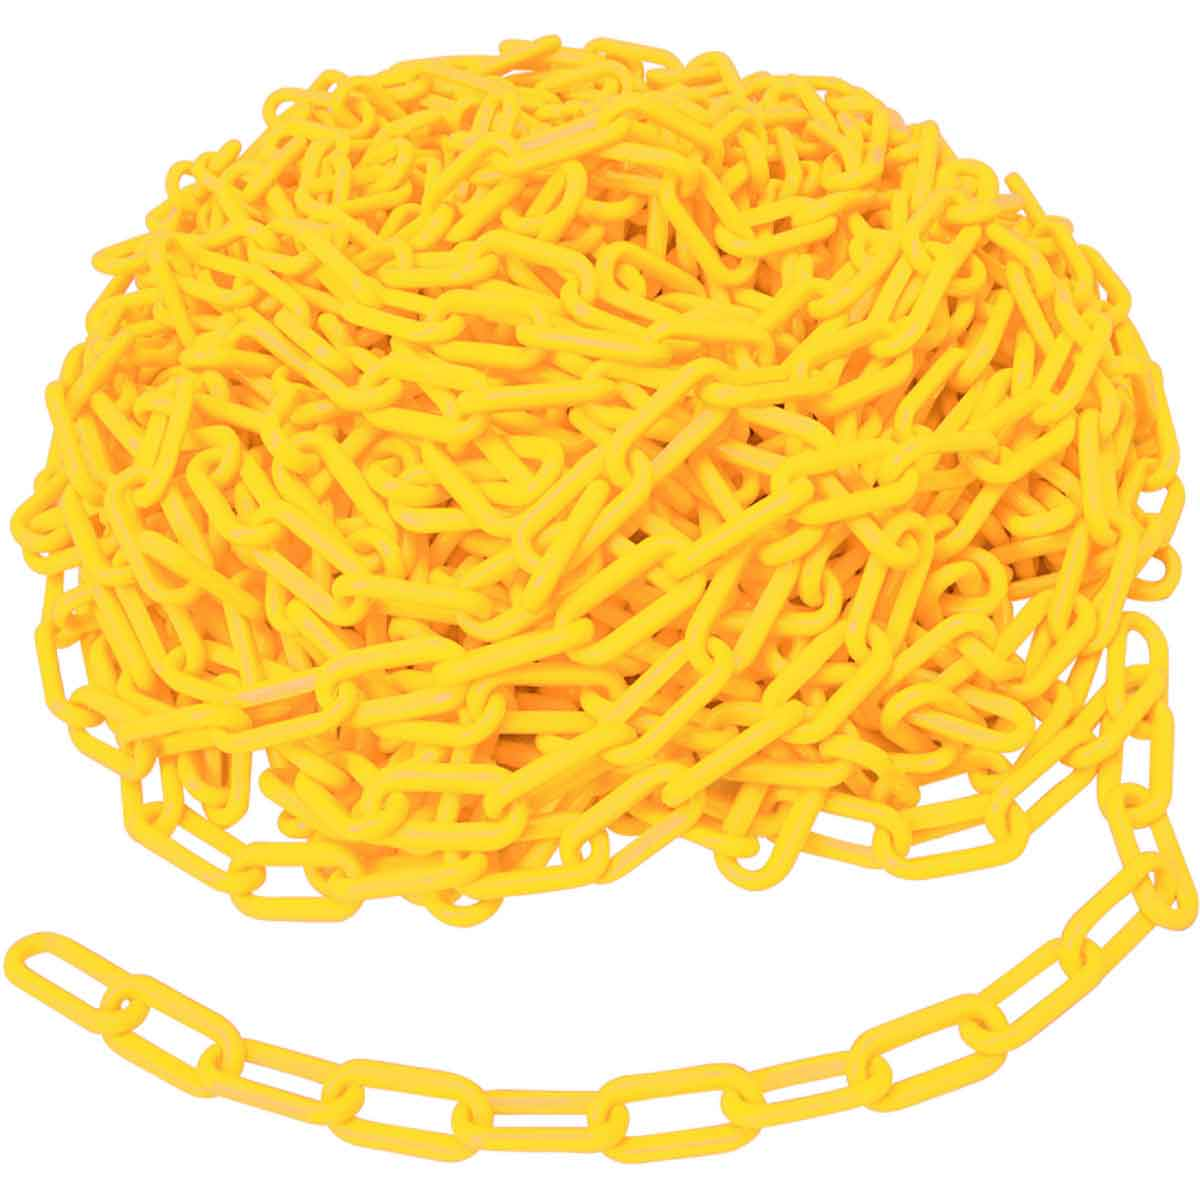 Brady® BradyLink® 78234 Warning Chain, 1-1/2 in, 100 ft L, Yellow, B-900 Polyethylene